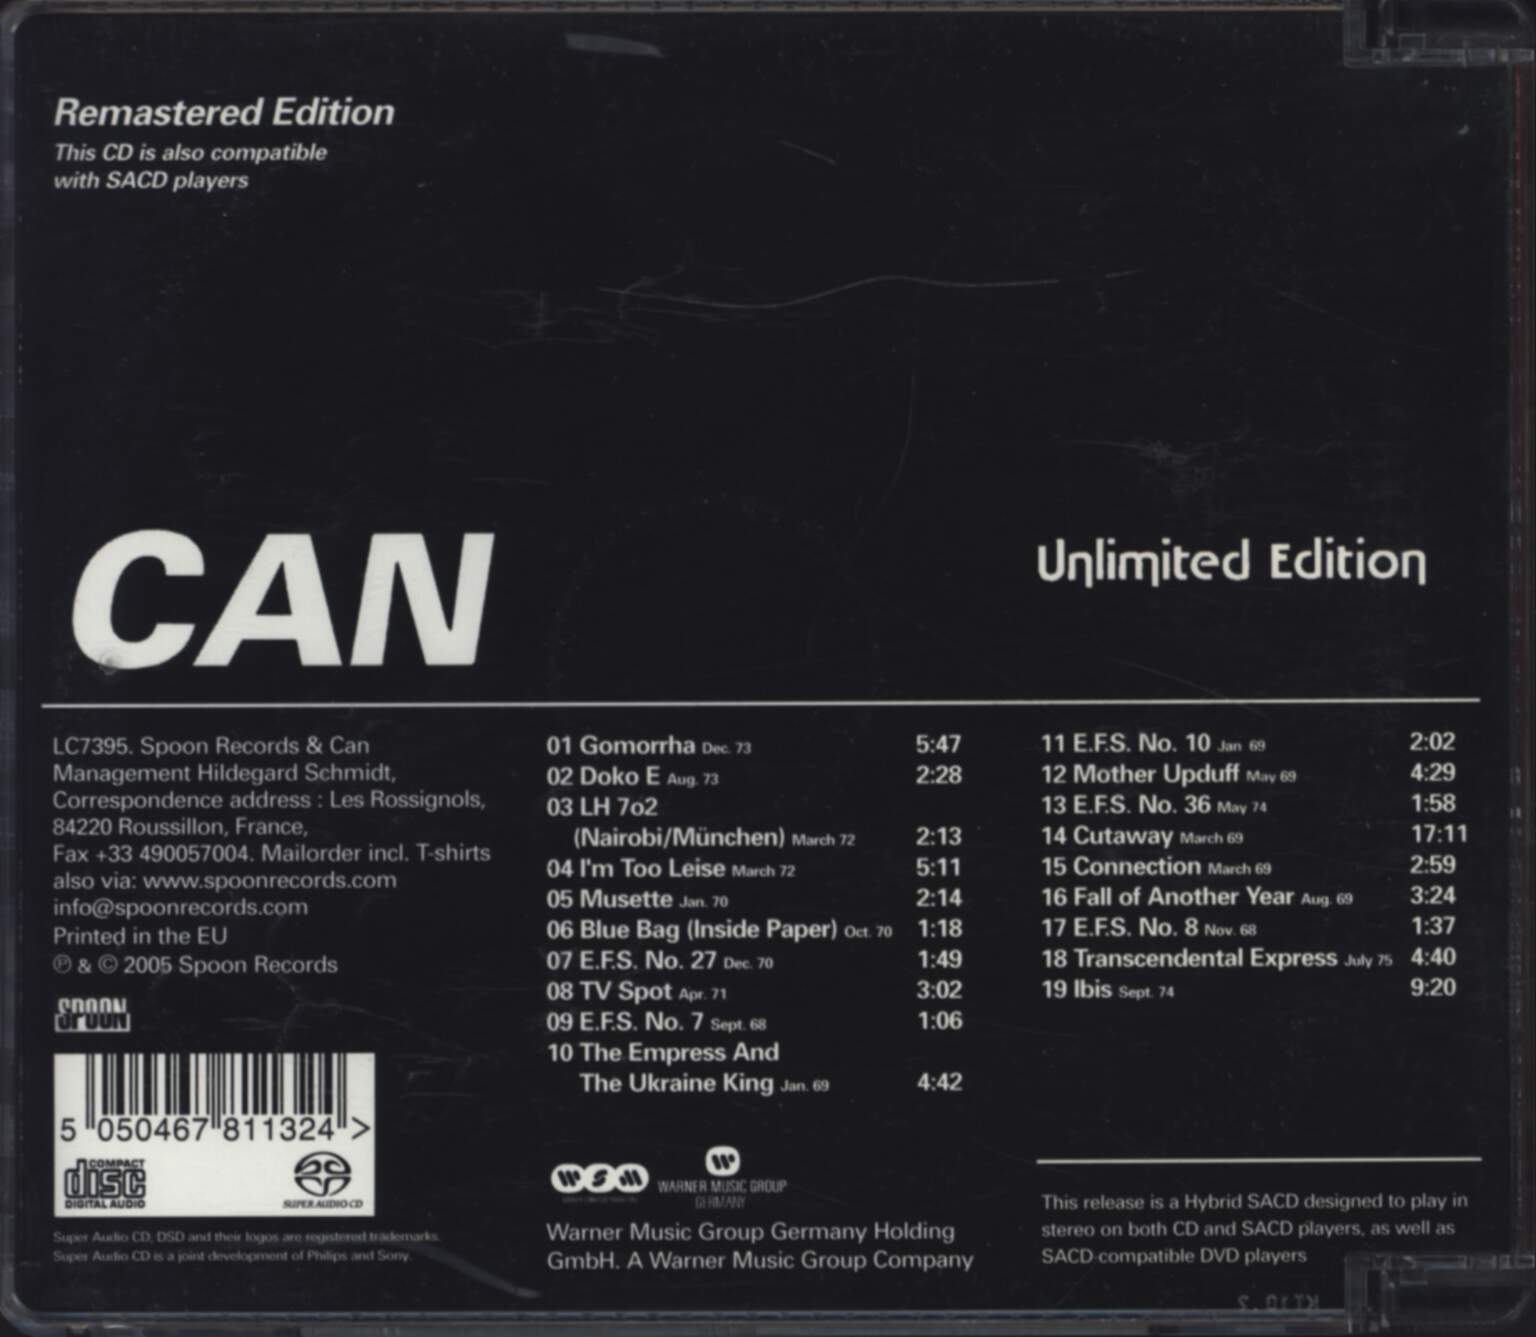 Can: Unlimited Edition, CD